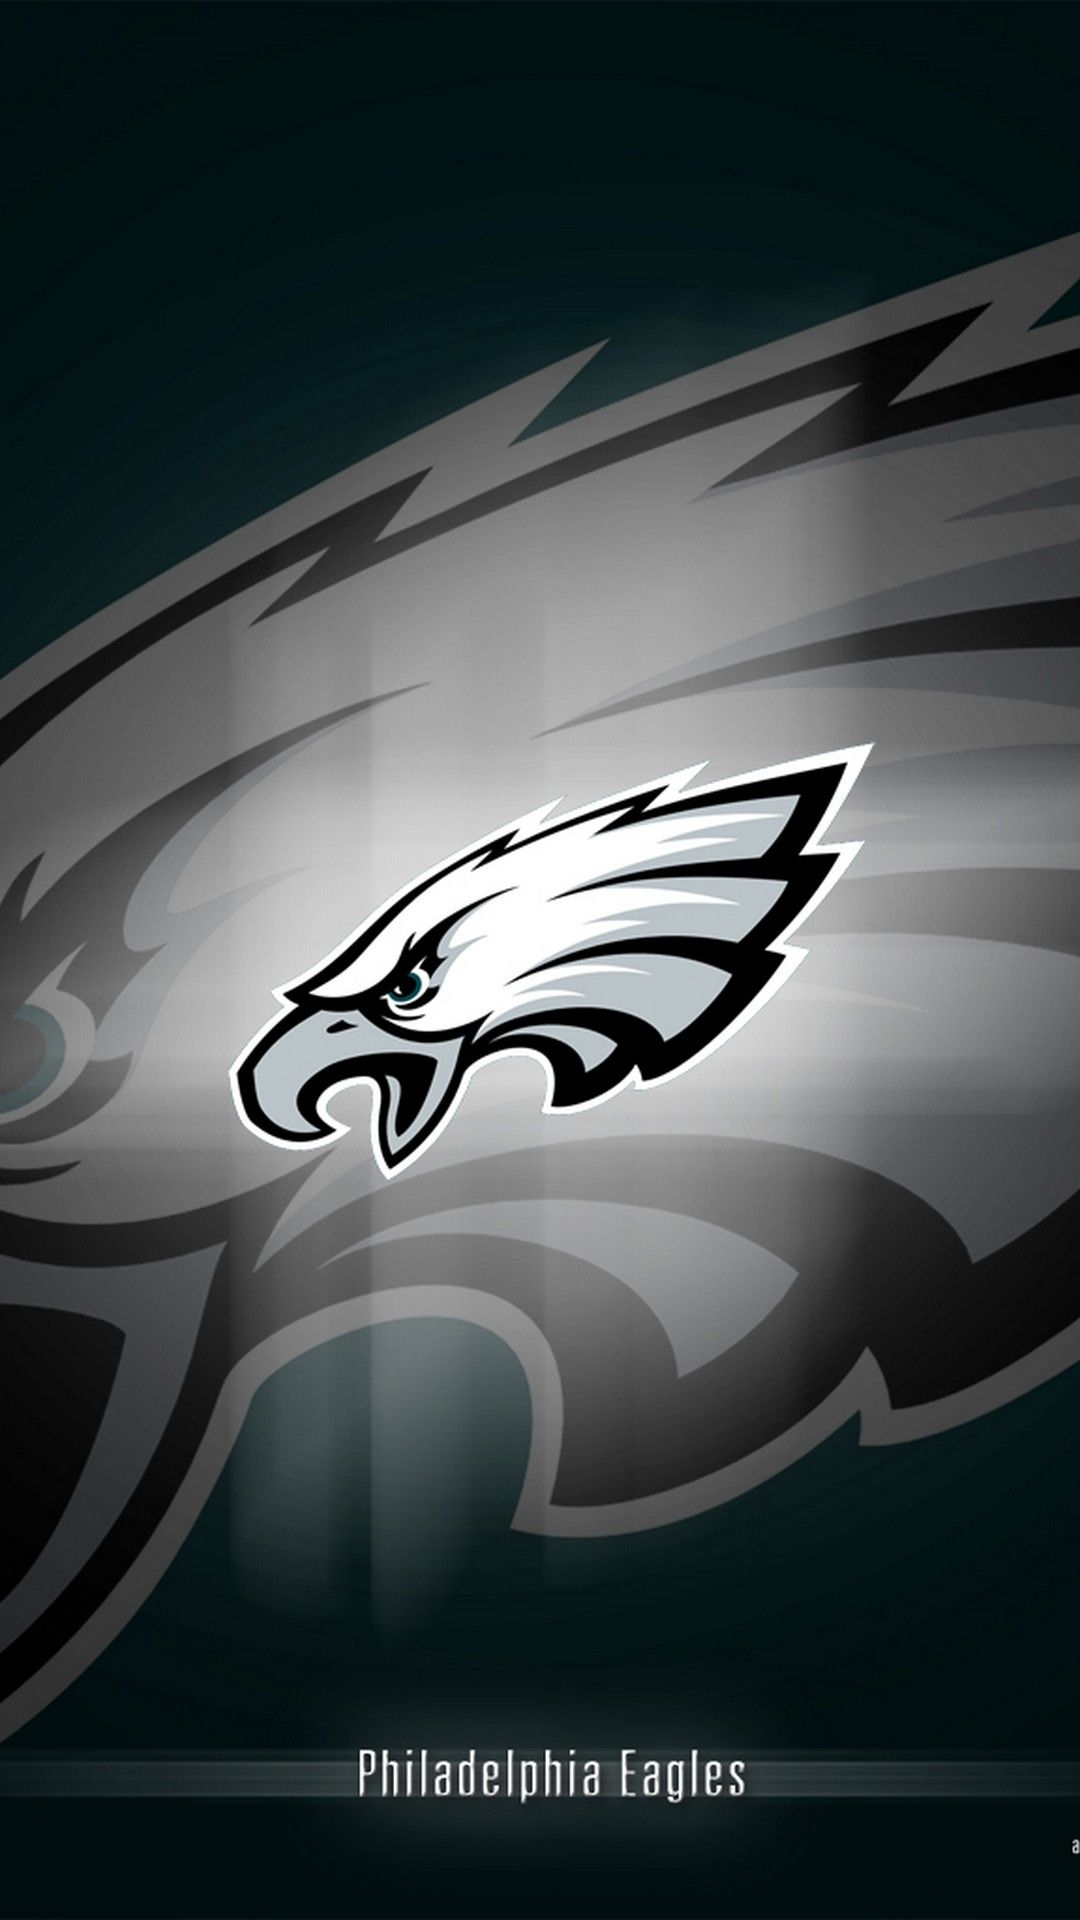 Wallpaper Eagles Iphone 2020 Nfl Football Wallpapers Philadelphia Eagles Wallpaper Football Wallpaper Nfl Football Wallpaper